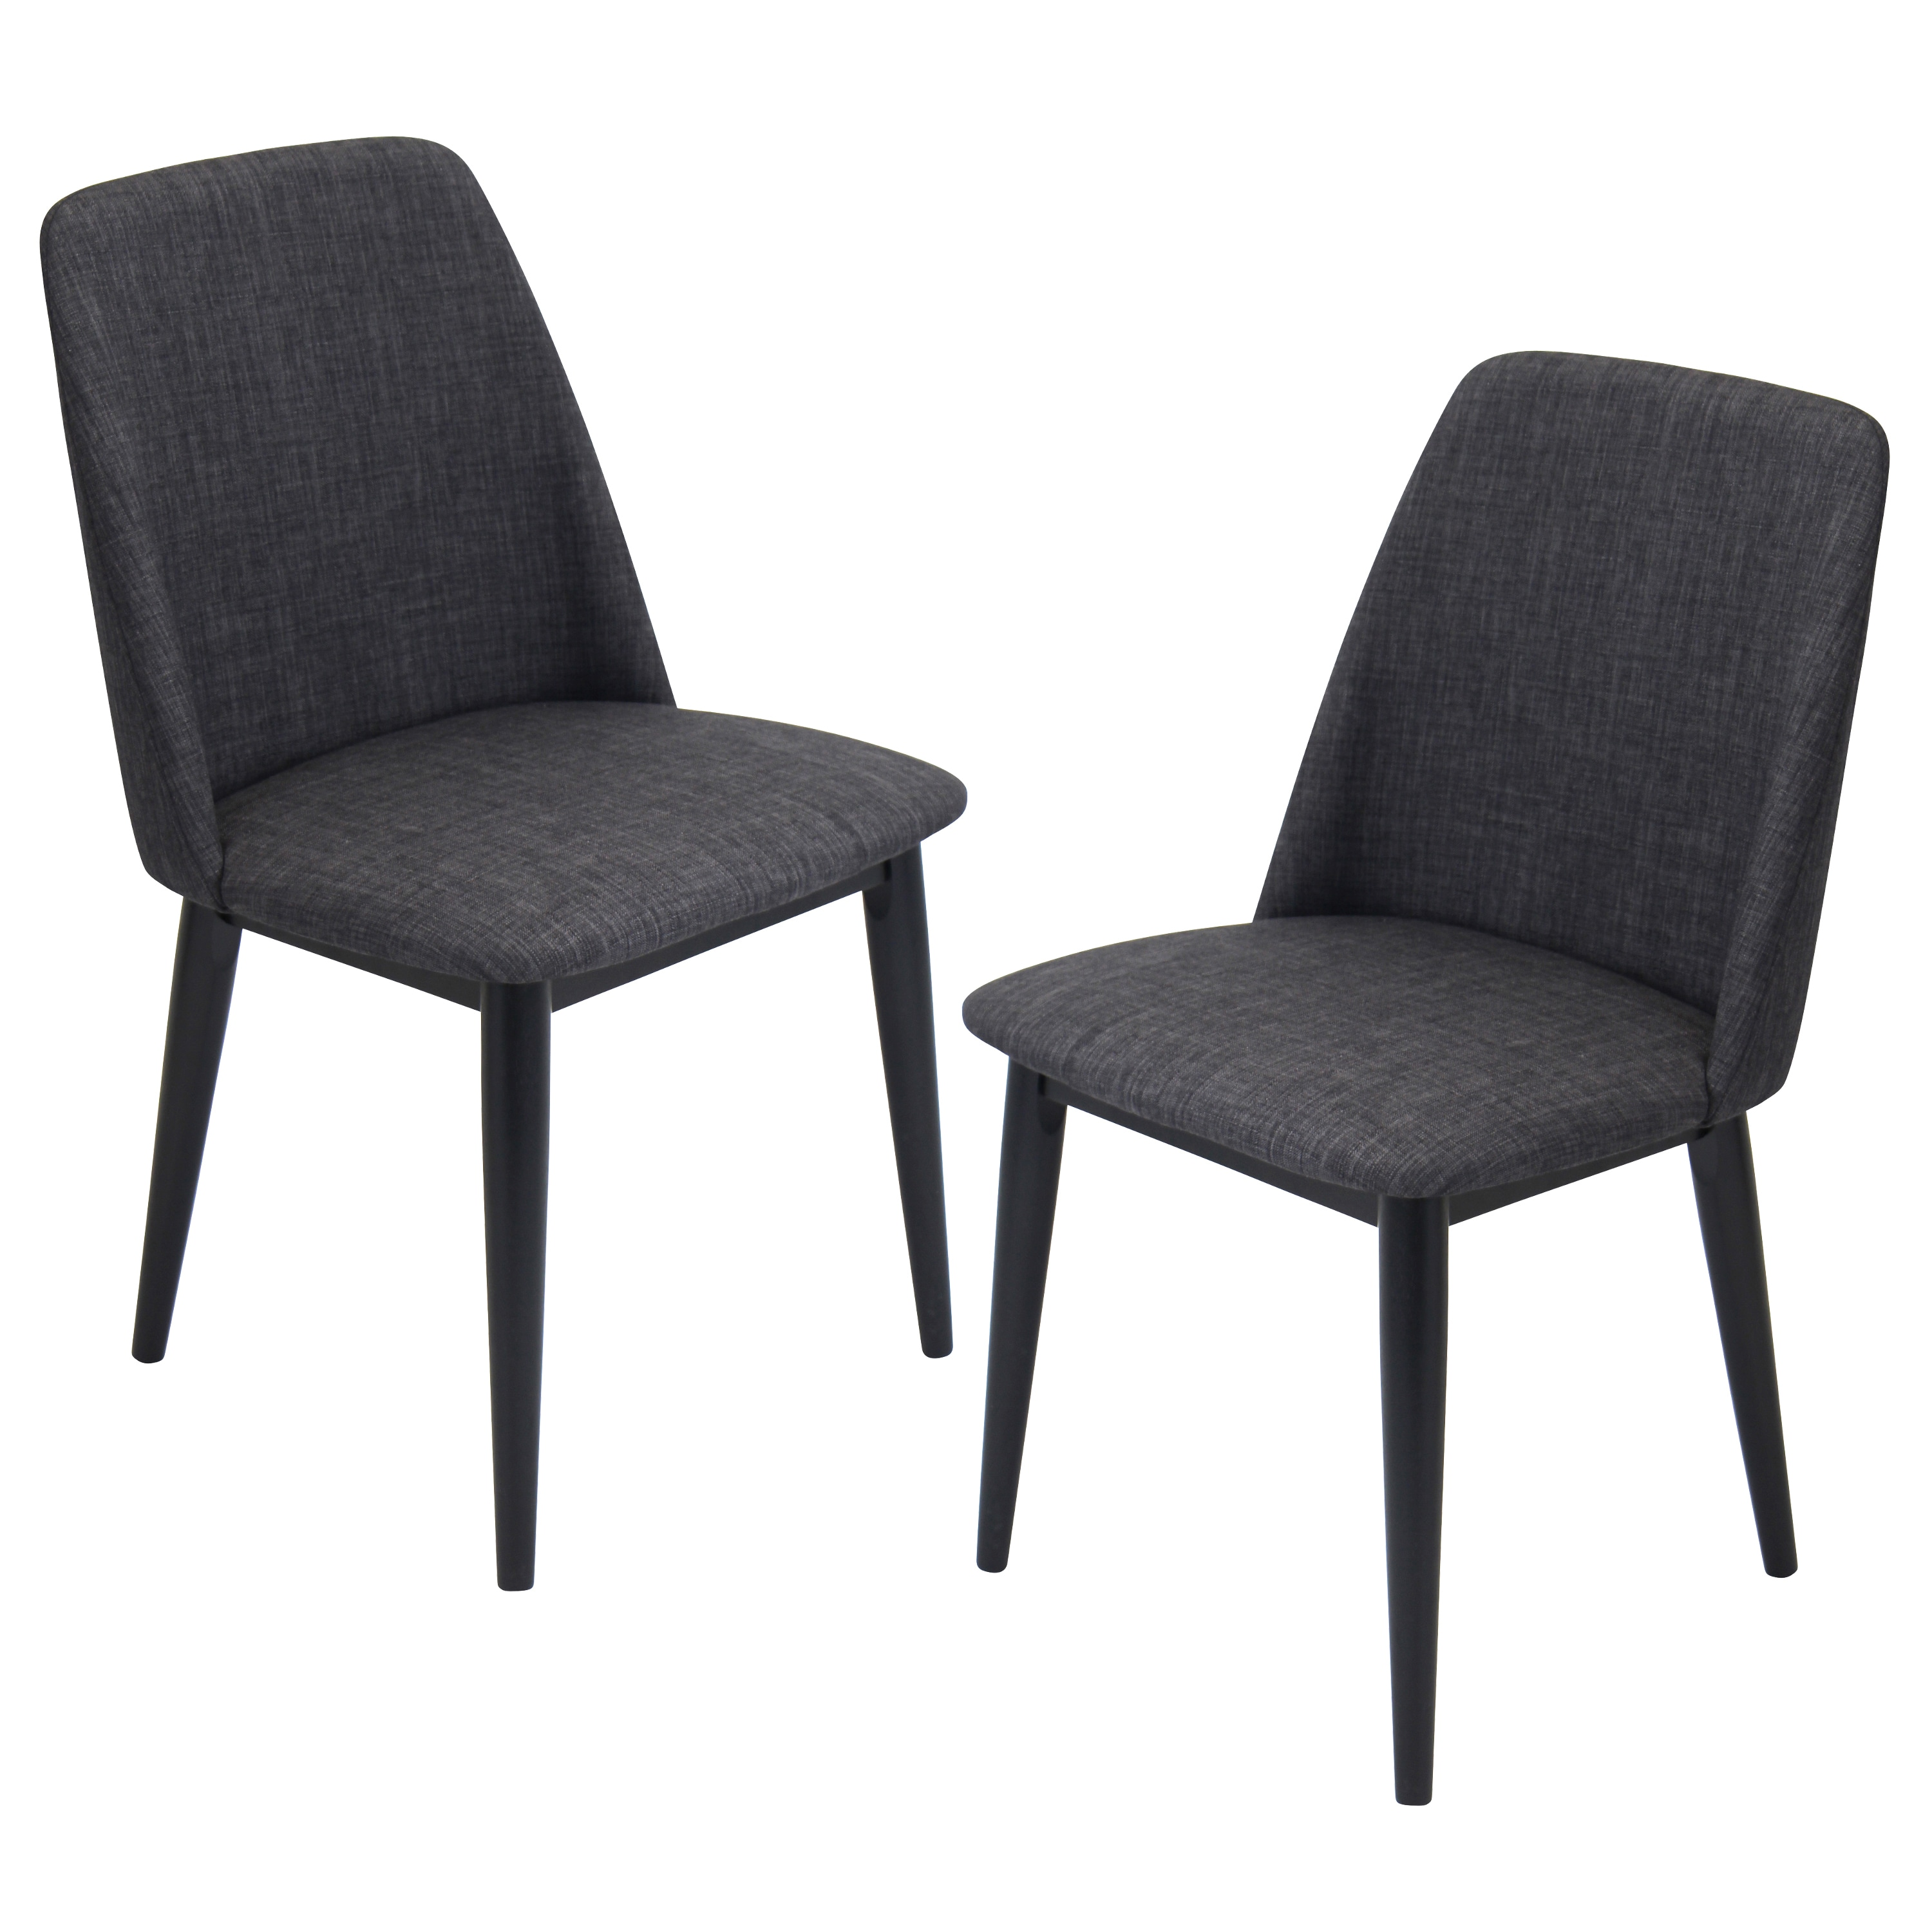 Lumisource Tintori Fabric Upholstered Dining Chairs (Set of 2)